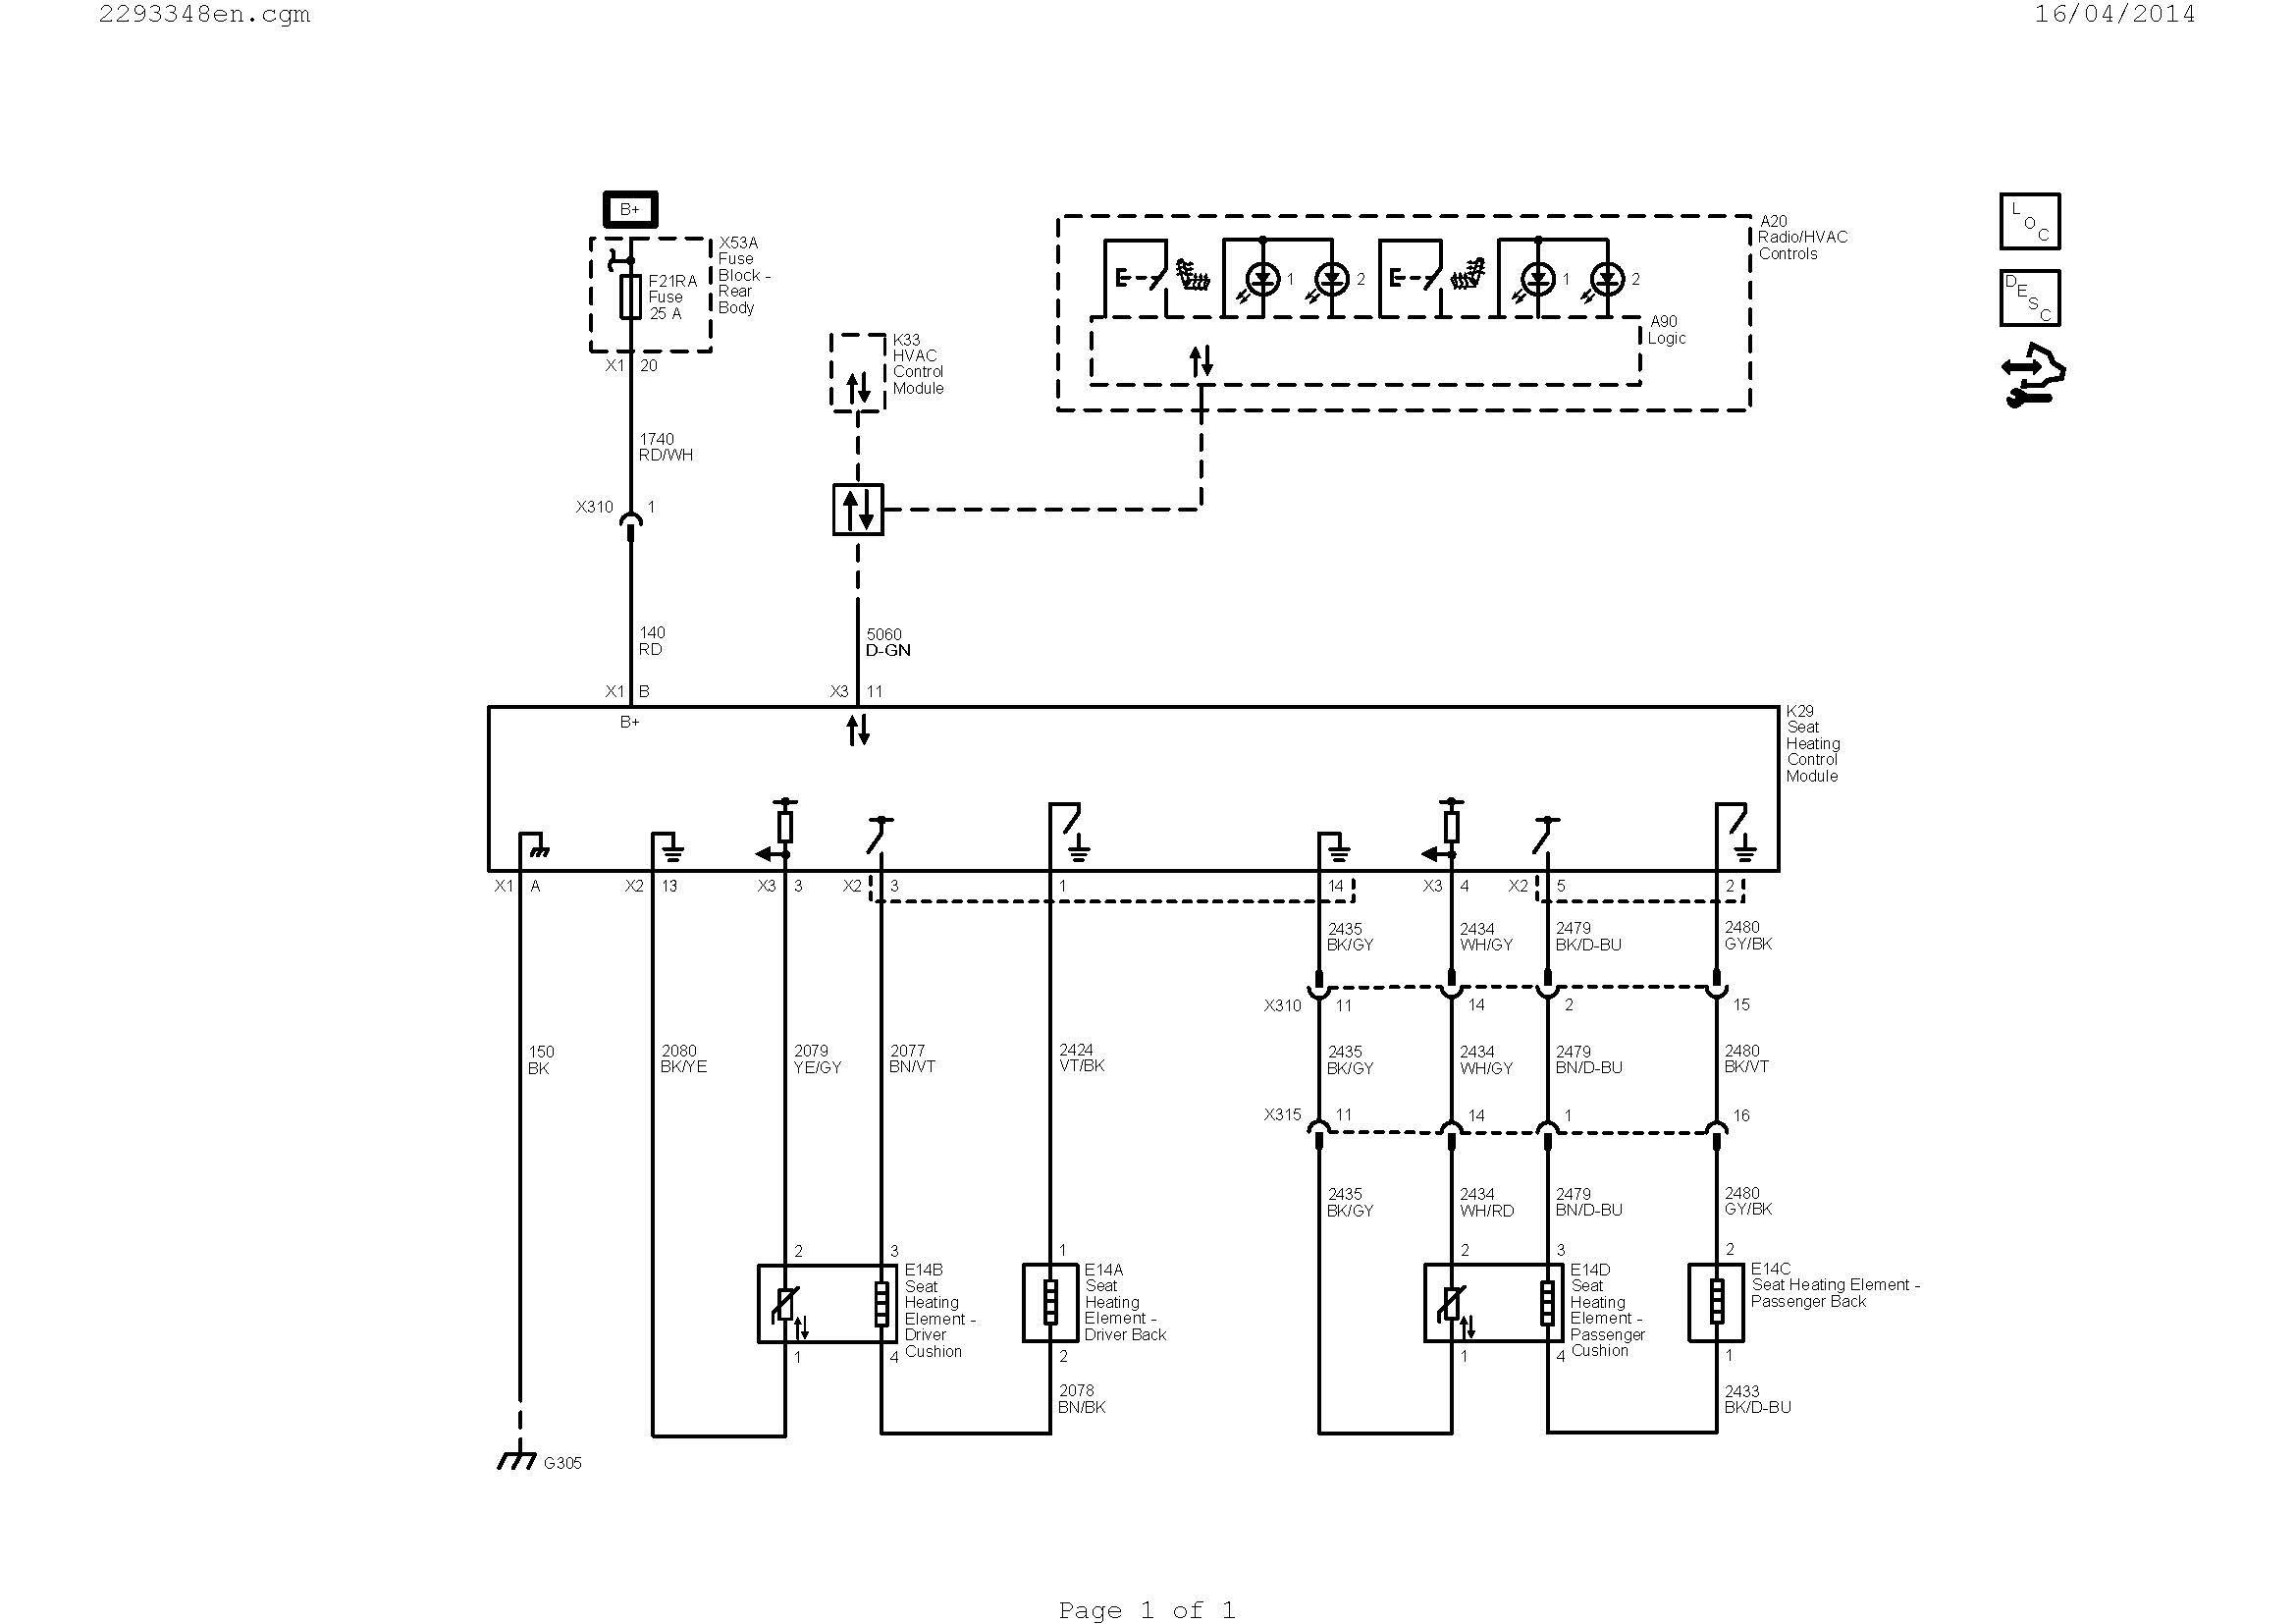 ac unit wiring diagram Download-air conditioner wiring diagram picture Collection Wiring A Ac Thermostat Diagram New Wiring Diagram Ac 9-f